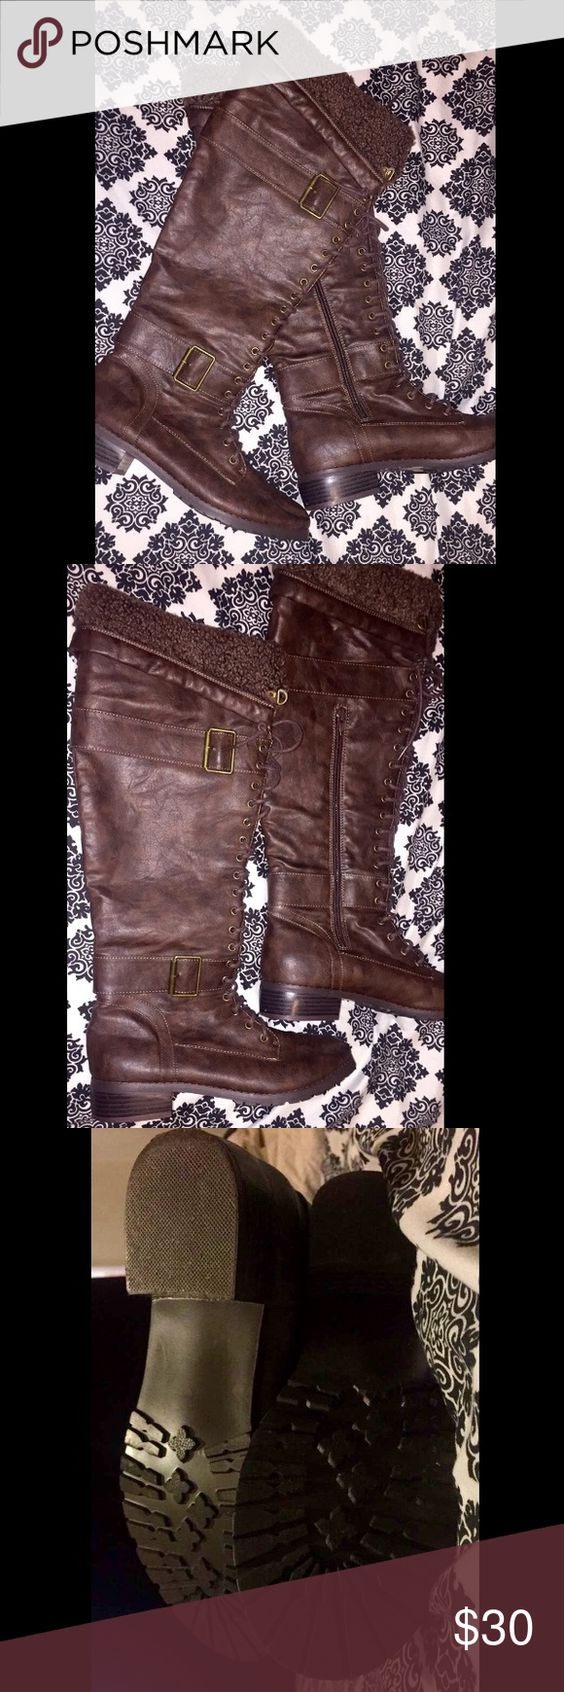 Tall Brown Boots Worn twice, excellent condition JustFab Shoes Lace Up Boots